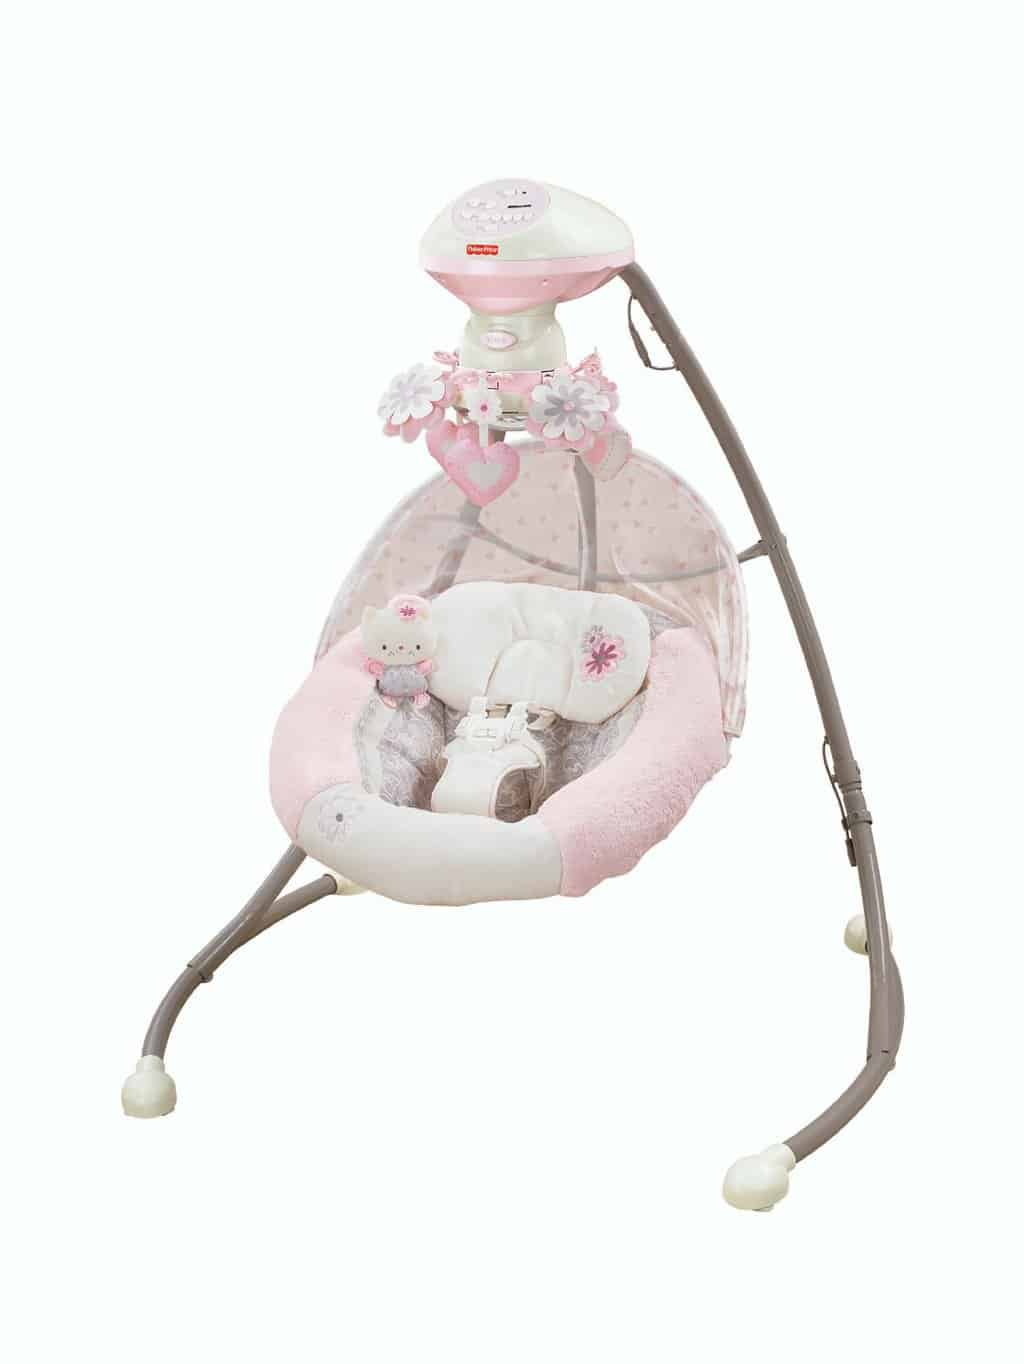 My Little Sweetie Cradle 'N Swing